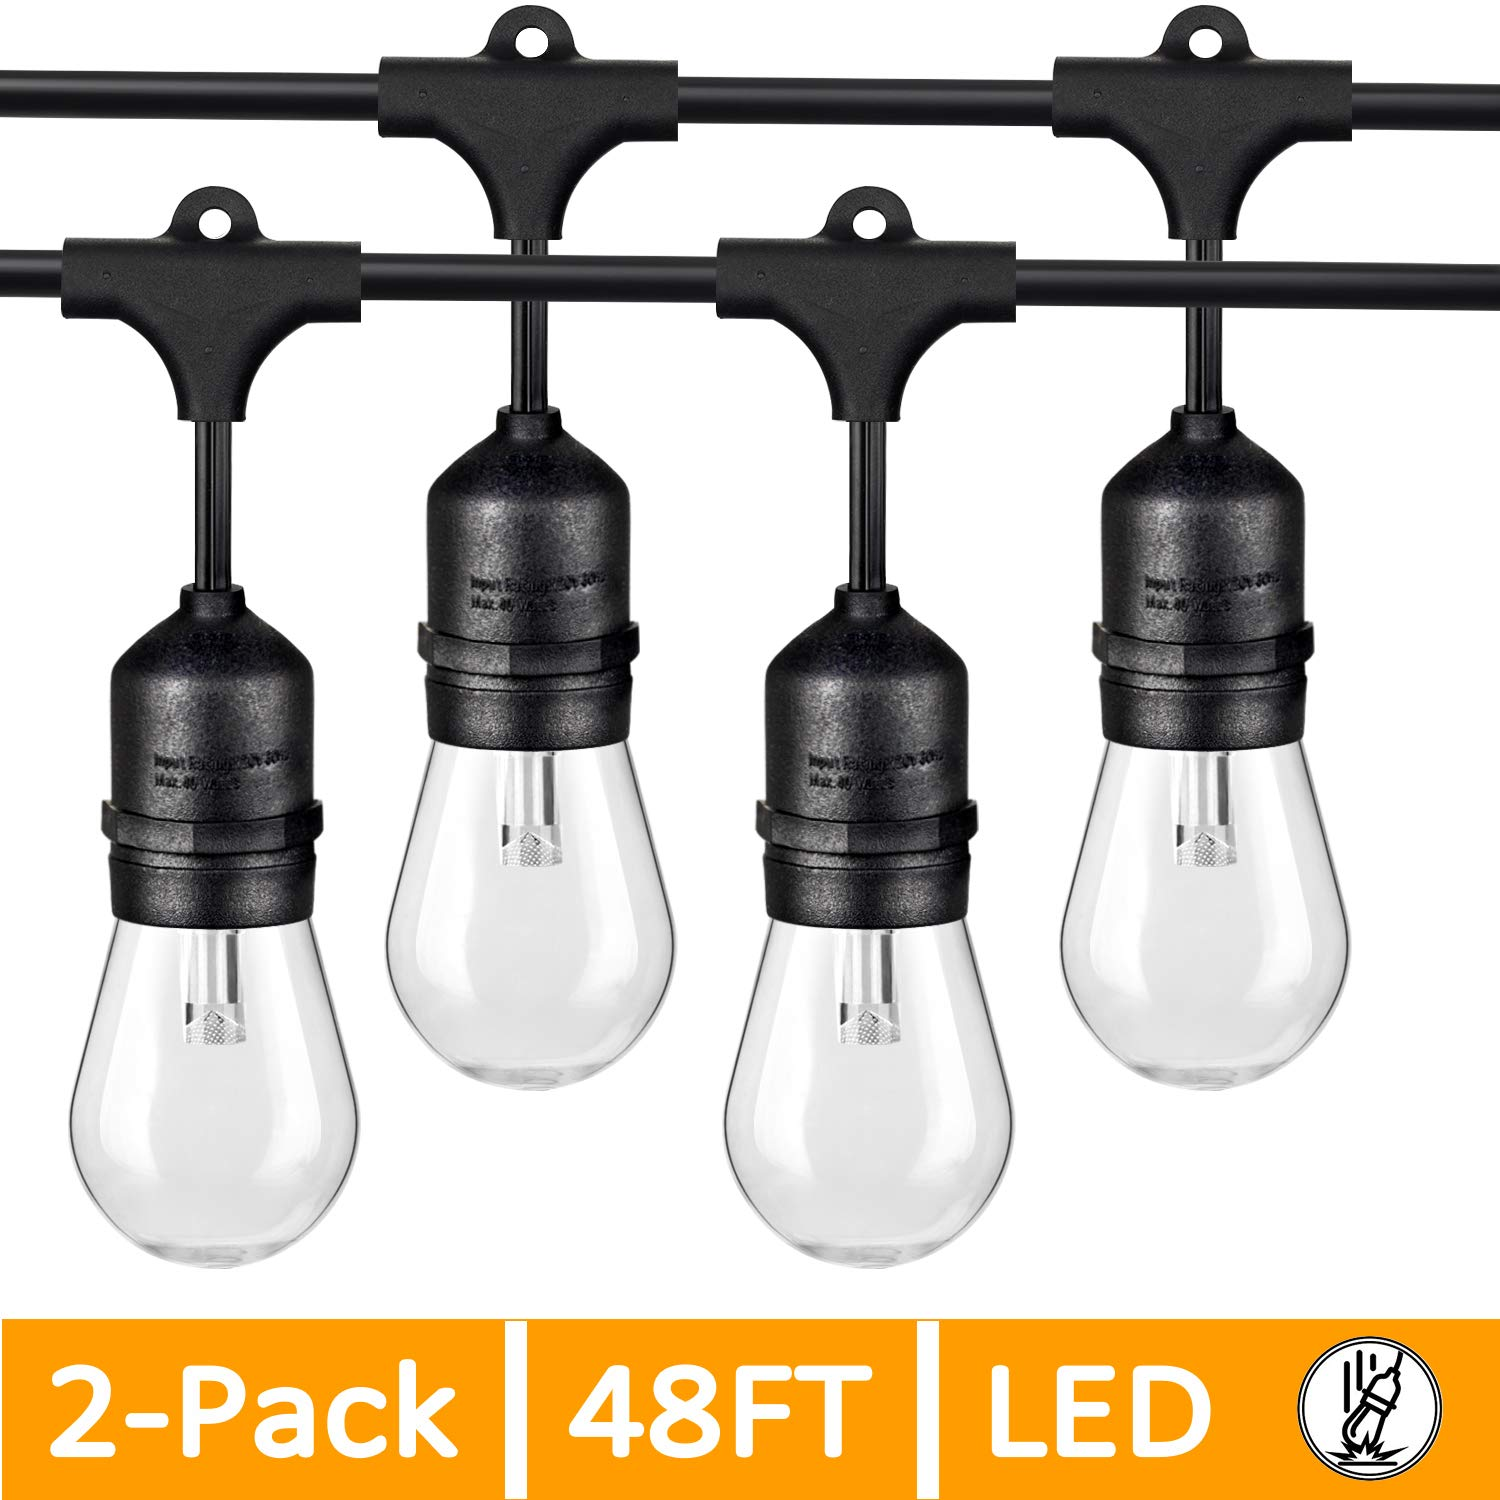 Dimmable Outdoor String Lights for Patio, LED Edison Bulb String Lights Weatherproof IP65, Commercial Grade Outdoor Cafe Lights Bistro Lights Shatterproof 48Ft for Pergola Deck Backyard(96Ft in Total) by Mlambert